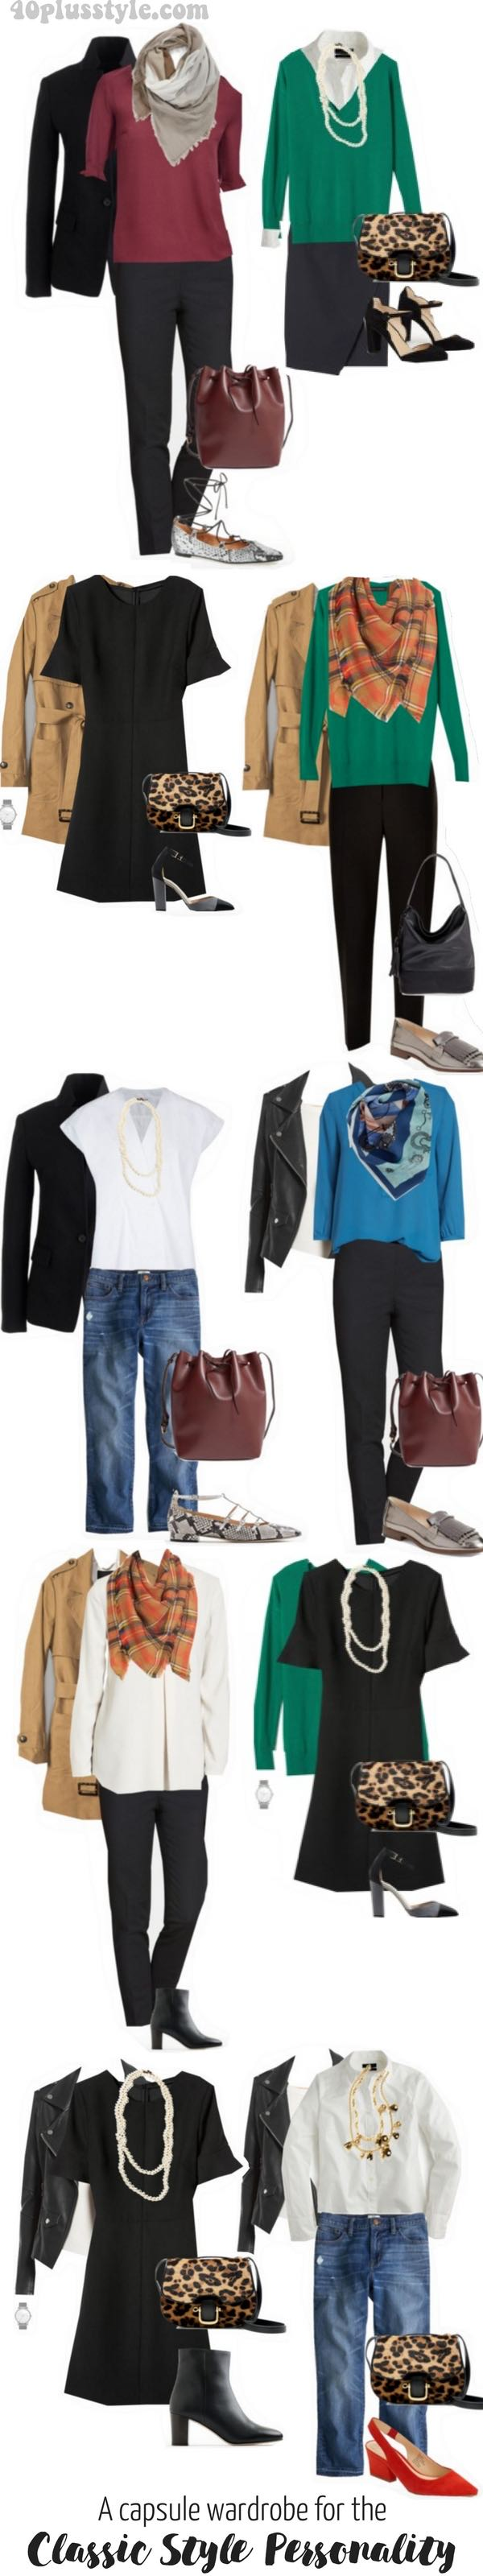 A capsule wardrobe for the classic style personality.